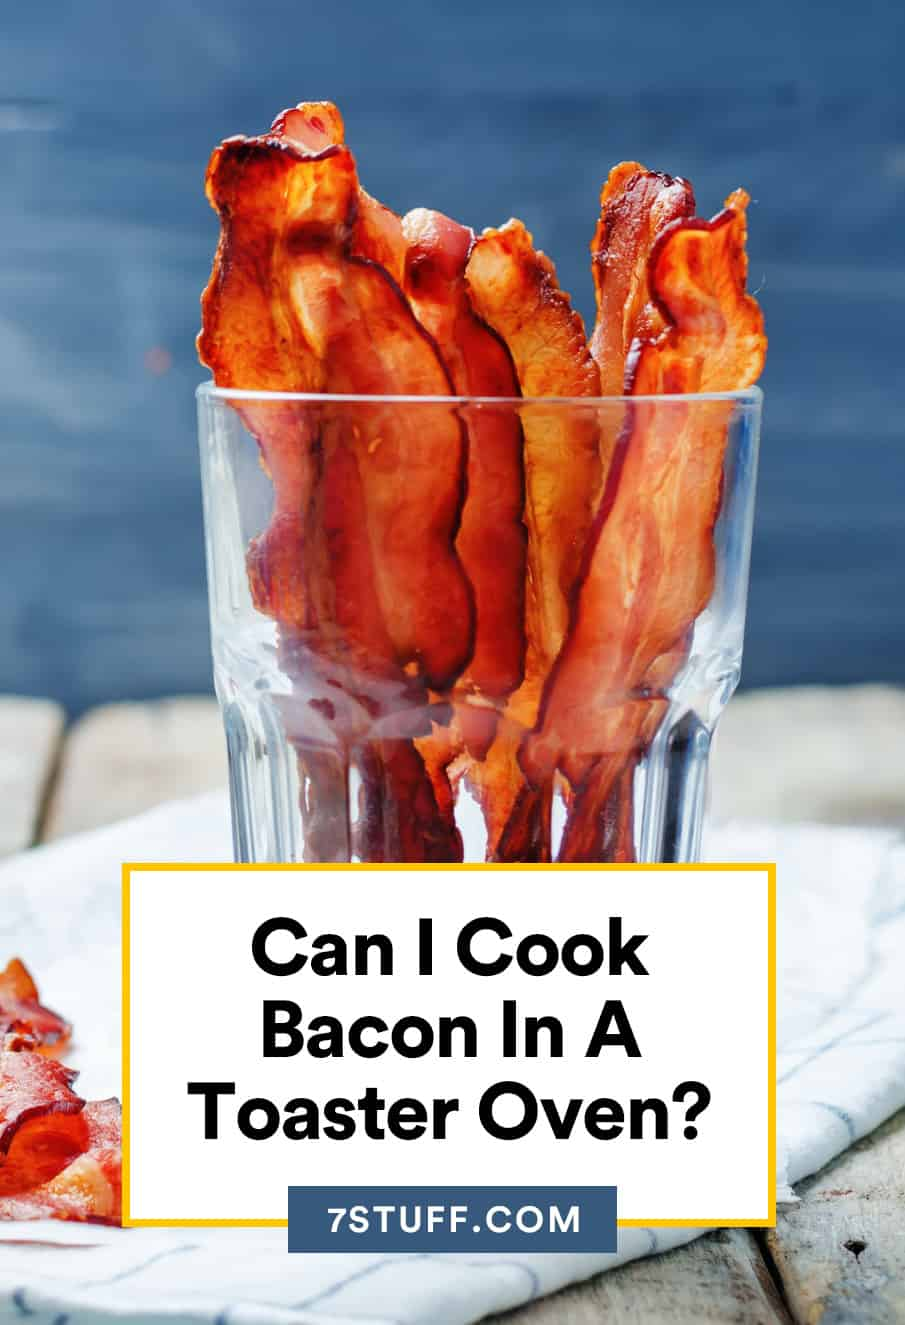 Can I Cook Bacon In A Toaster Oven?